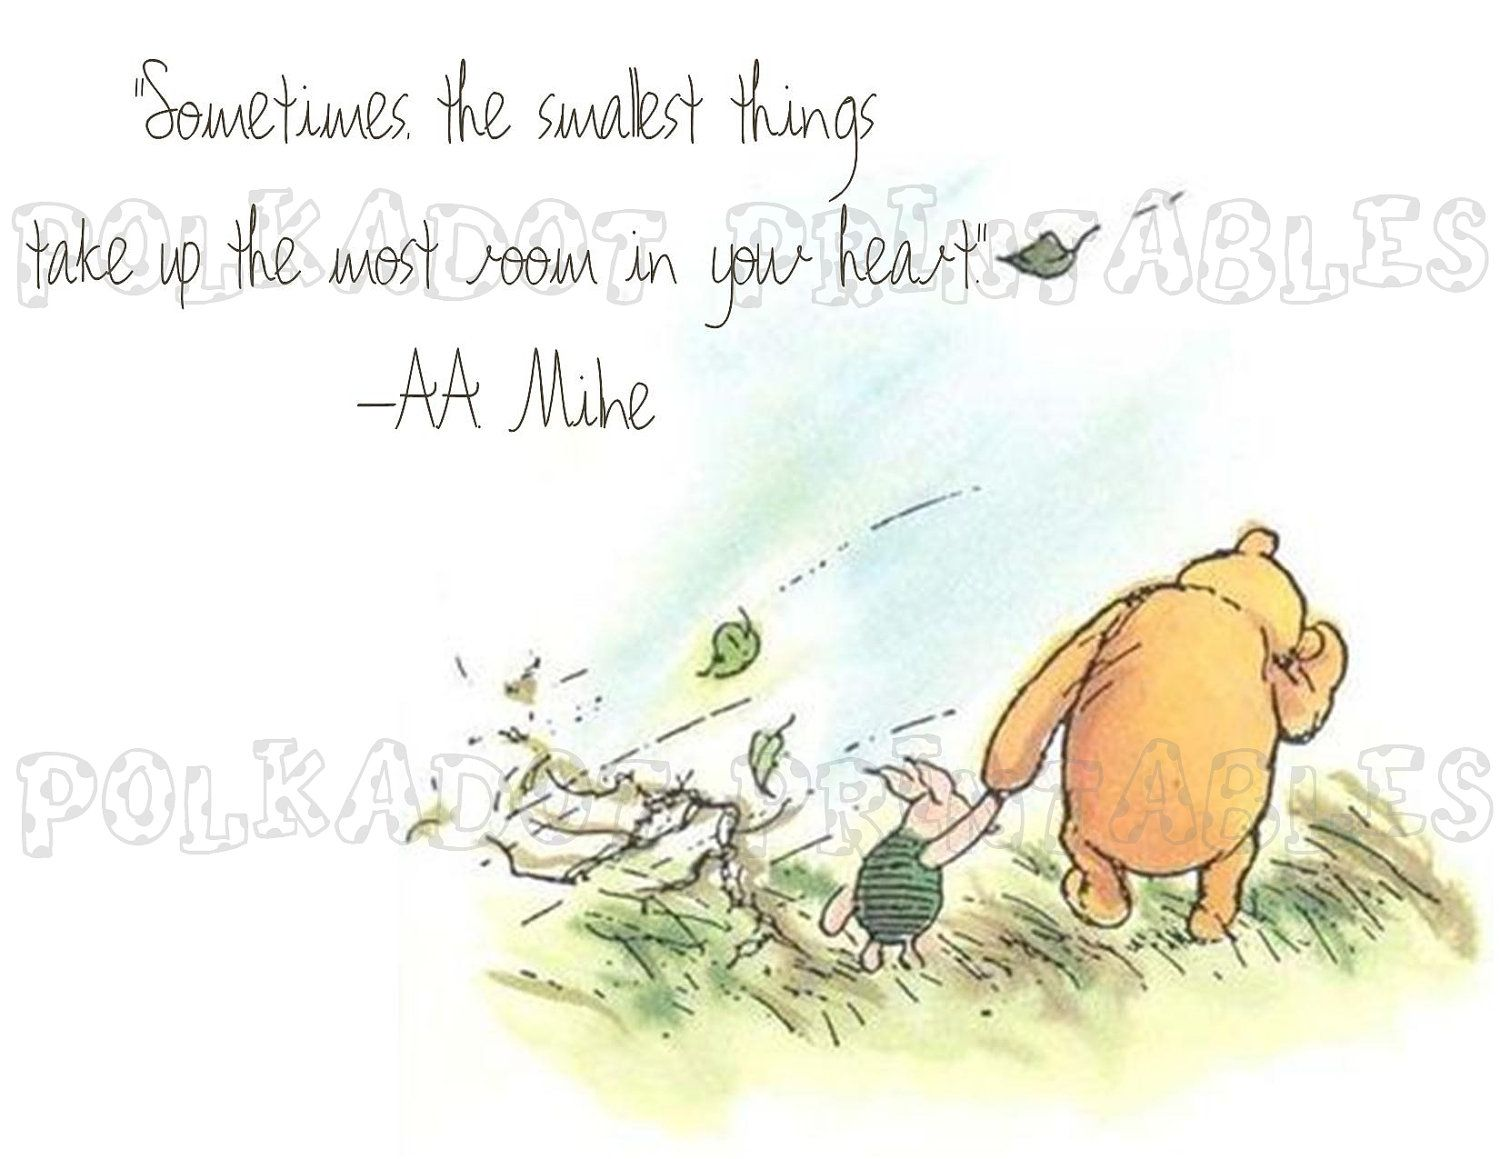 When its chilly, windy and/or rainy.I called it a winnie the pooh day. Reminds me of the classic pooh bear books where you'd see Pooh and Piglet walking while its windy and chilly. I love classic winnie the pooh.